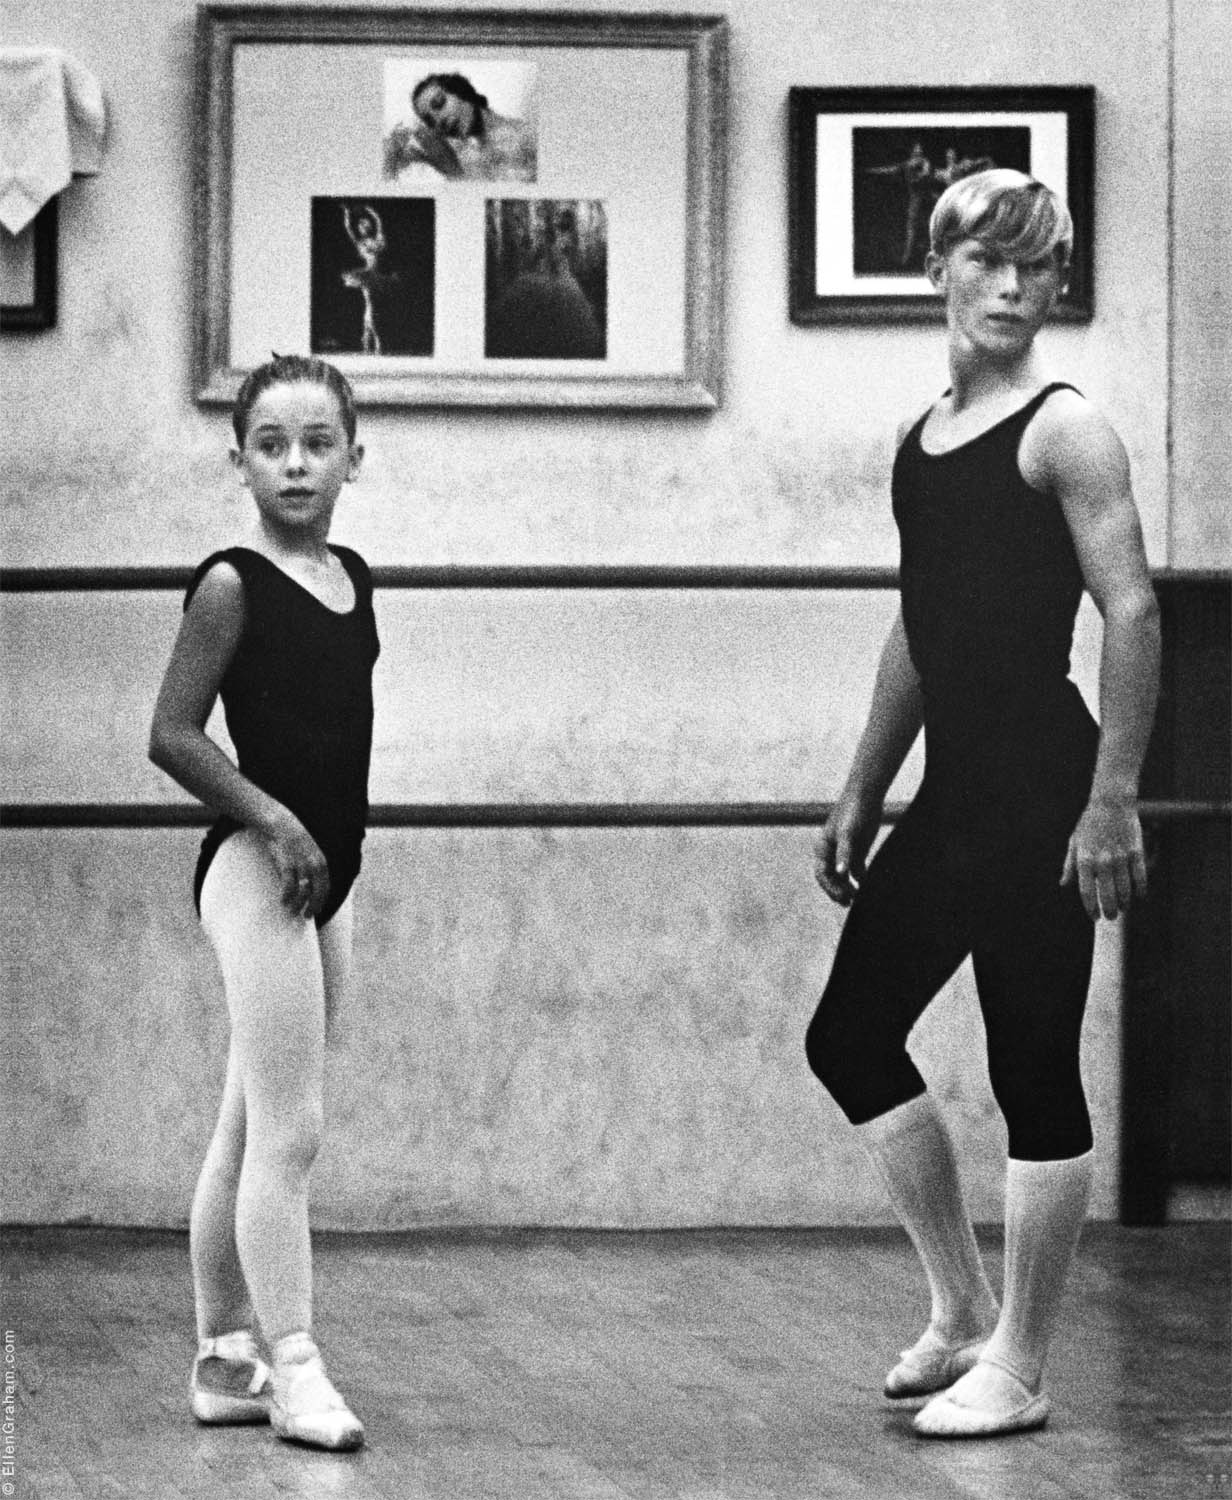 Dance Students, George Zoritch Dance School, West Hollywood, CA, 1966